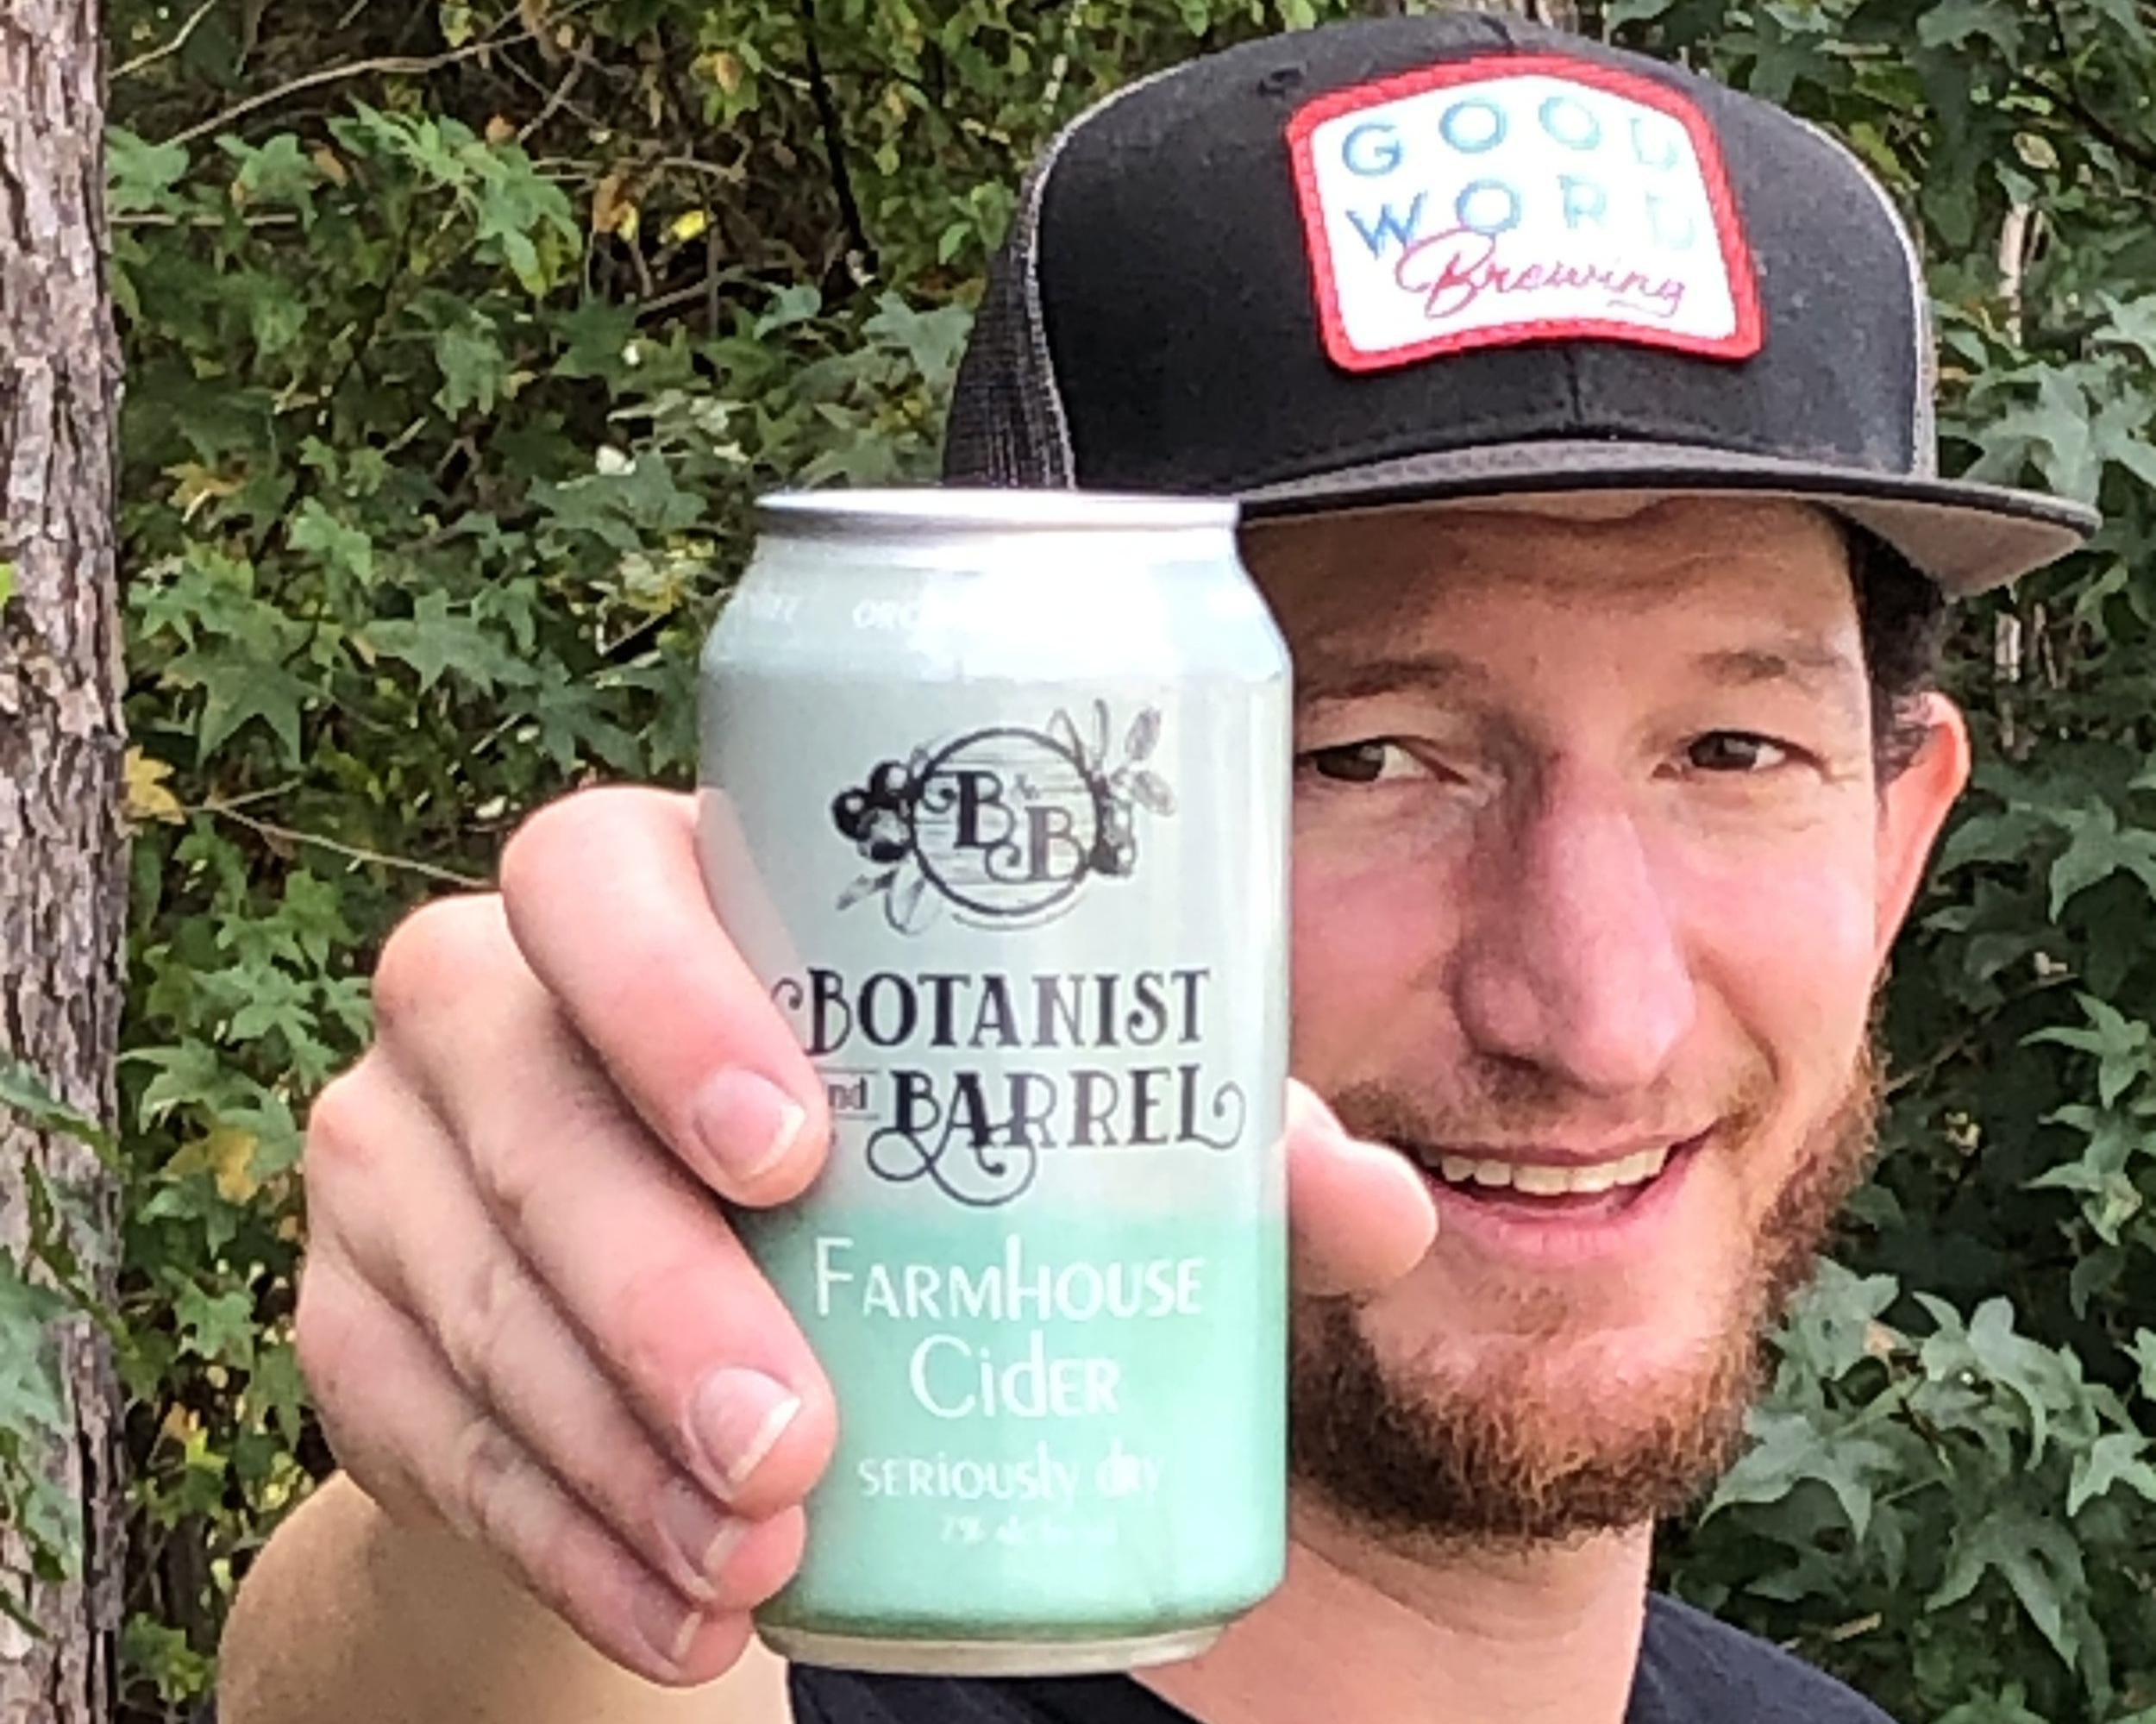 Botanist & Barrel's co-founder Lyndon Smith with a can of Farmhouse Cider Seriously Dry